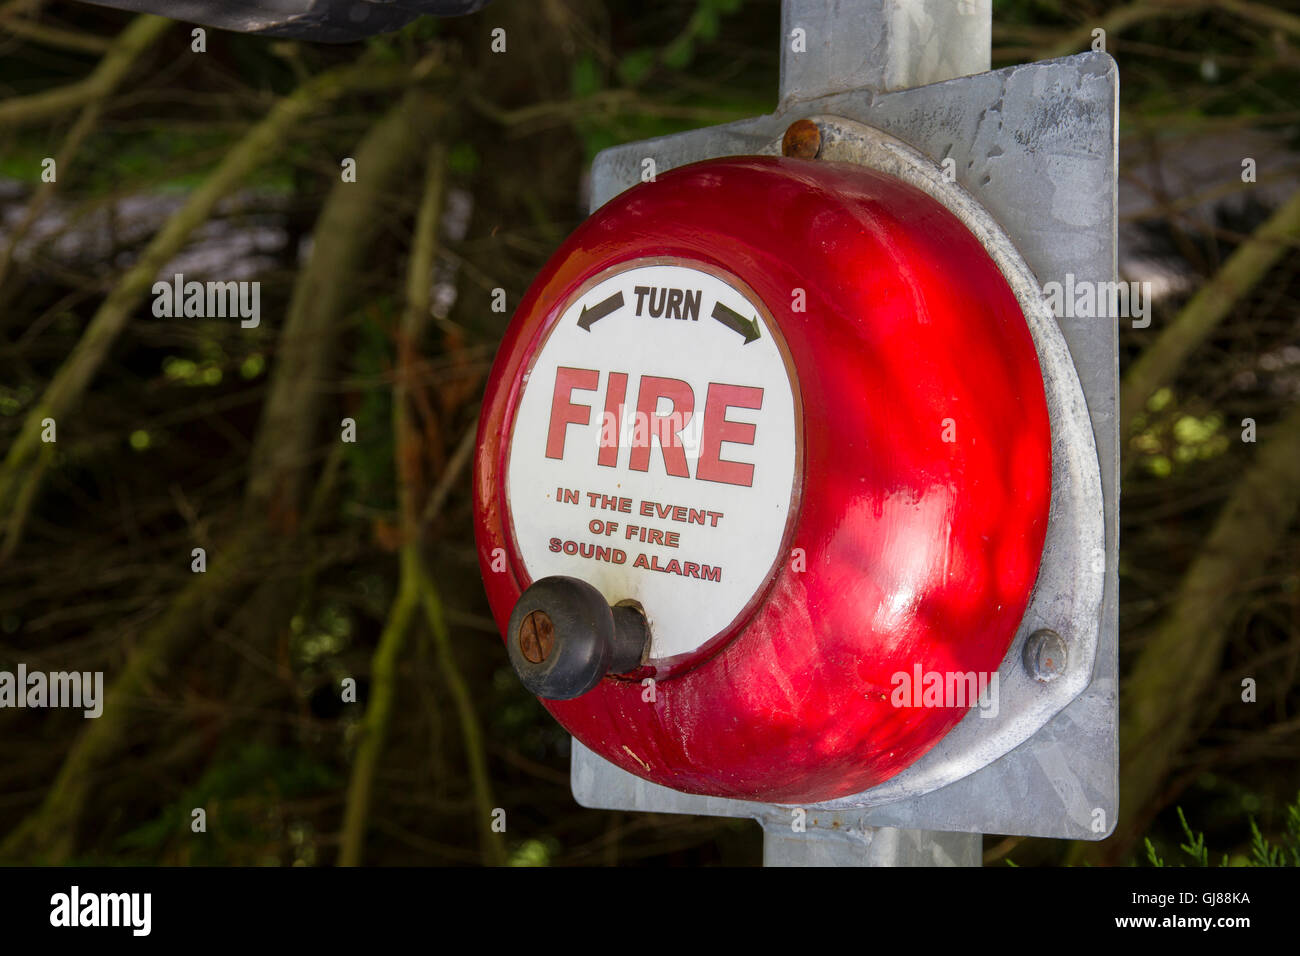 Old Fashioned Fire Alarm Warning Bell - Stock Image